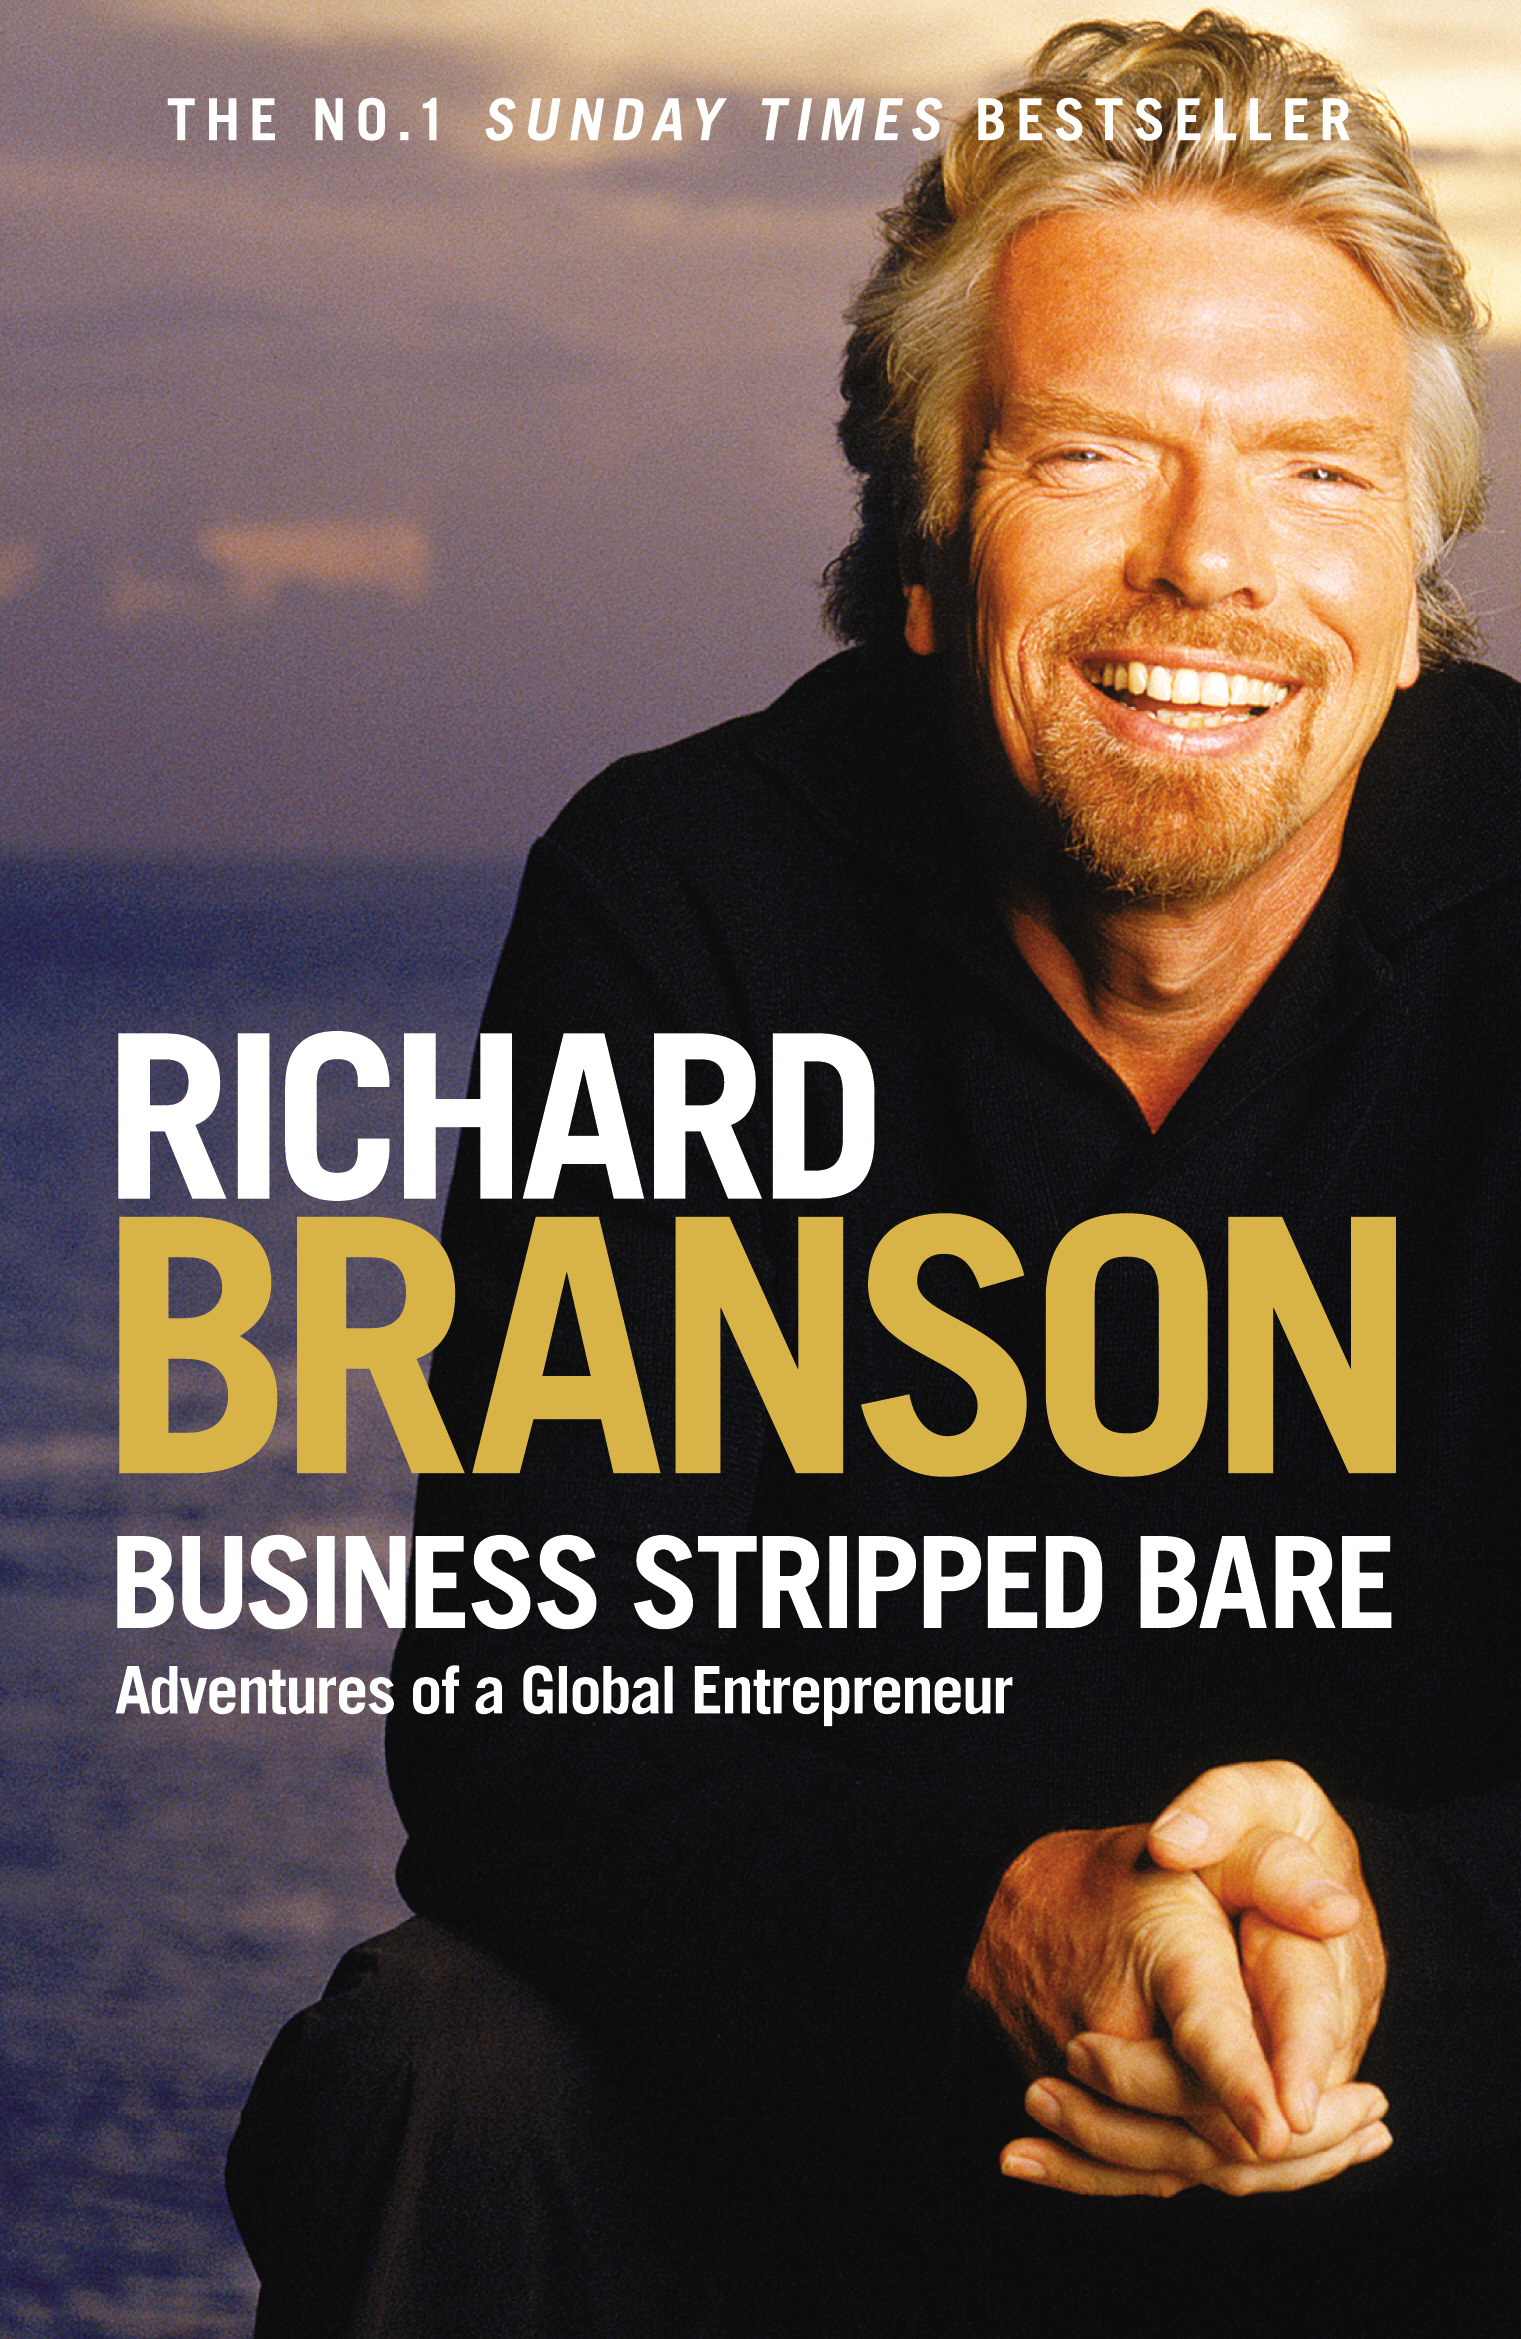 Business Stripped Bare Adventures of a Global Entrepreneur